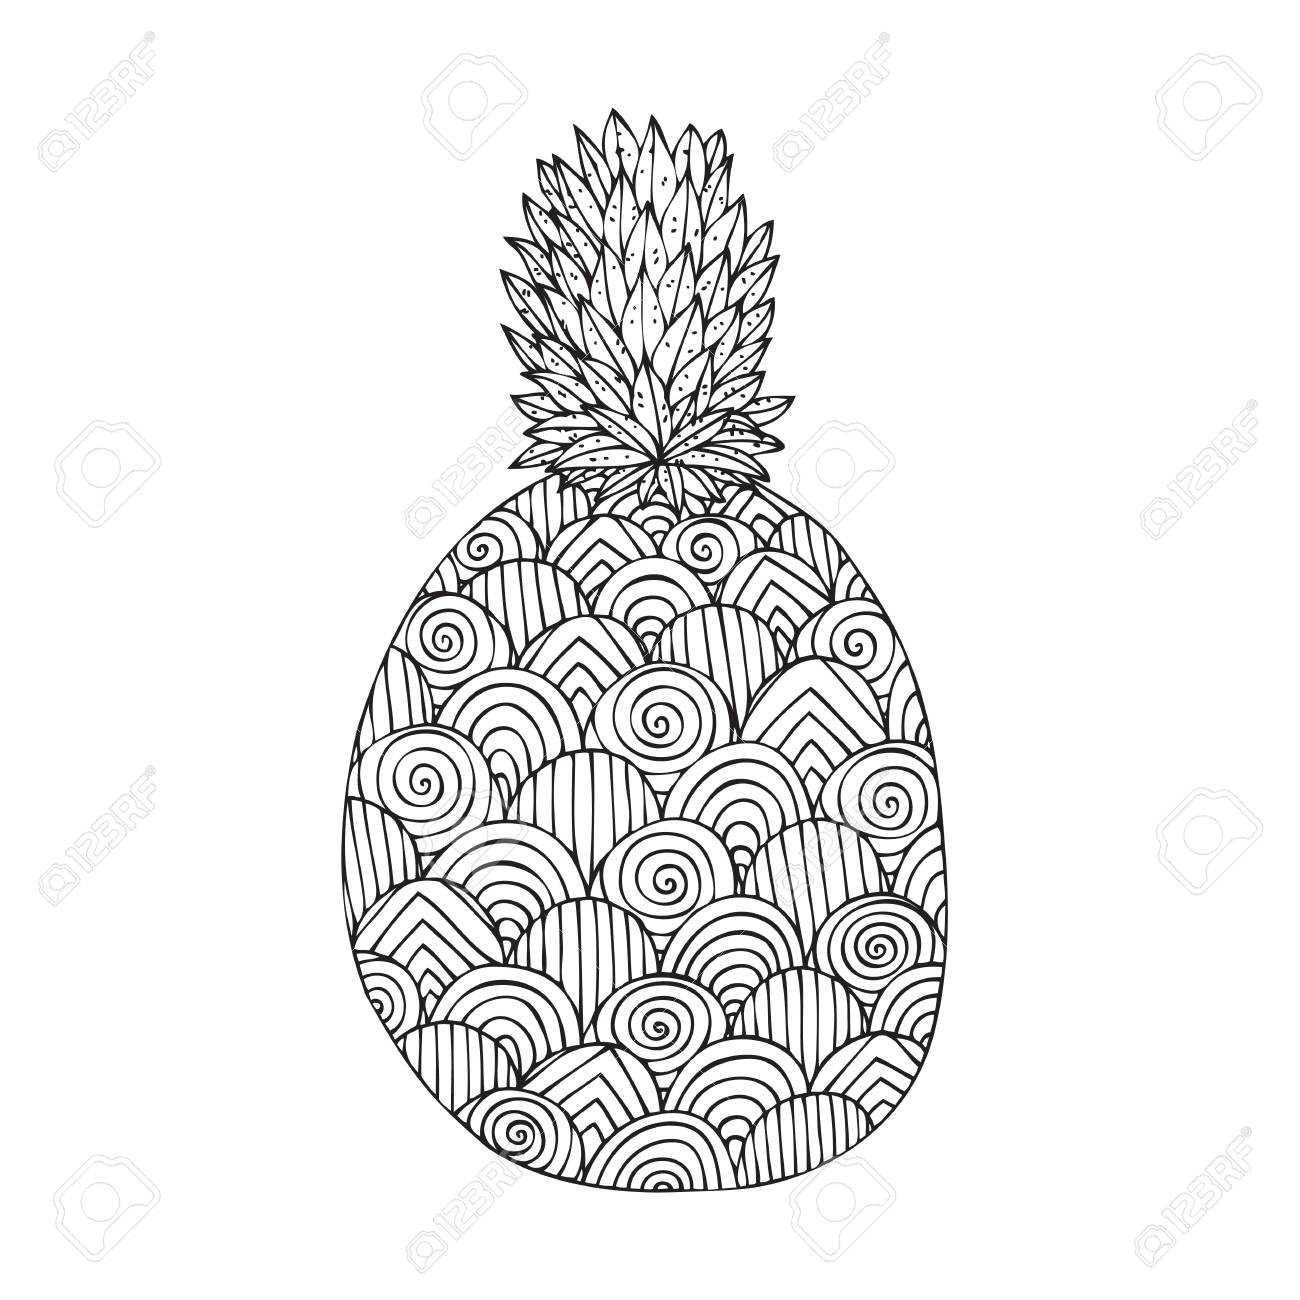 Adult Coloring Book Page Design With A Picture Of Pineapple For